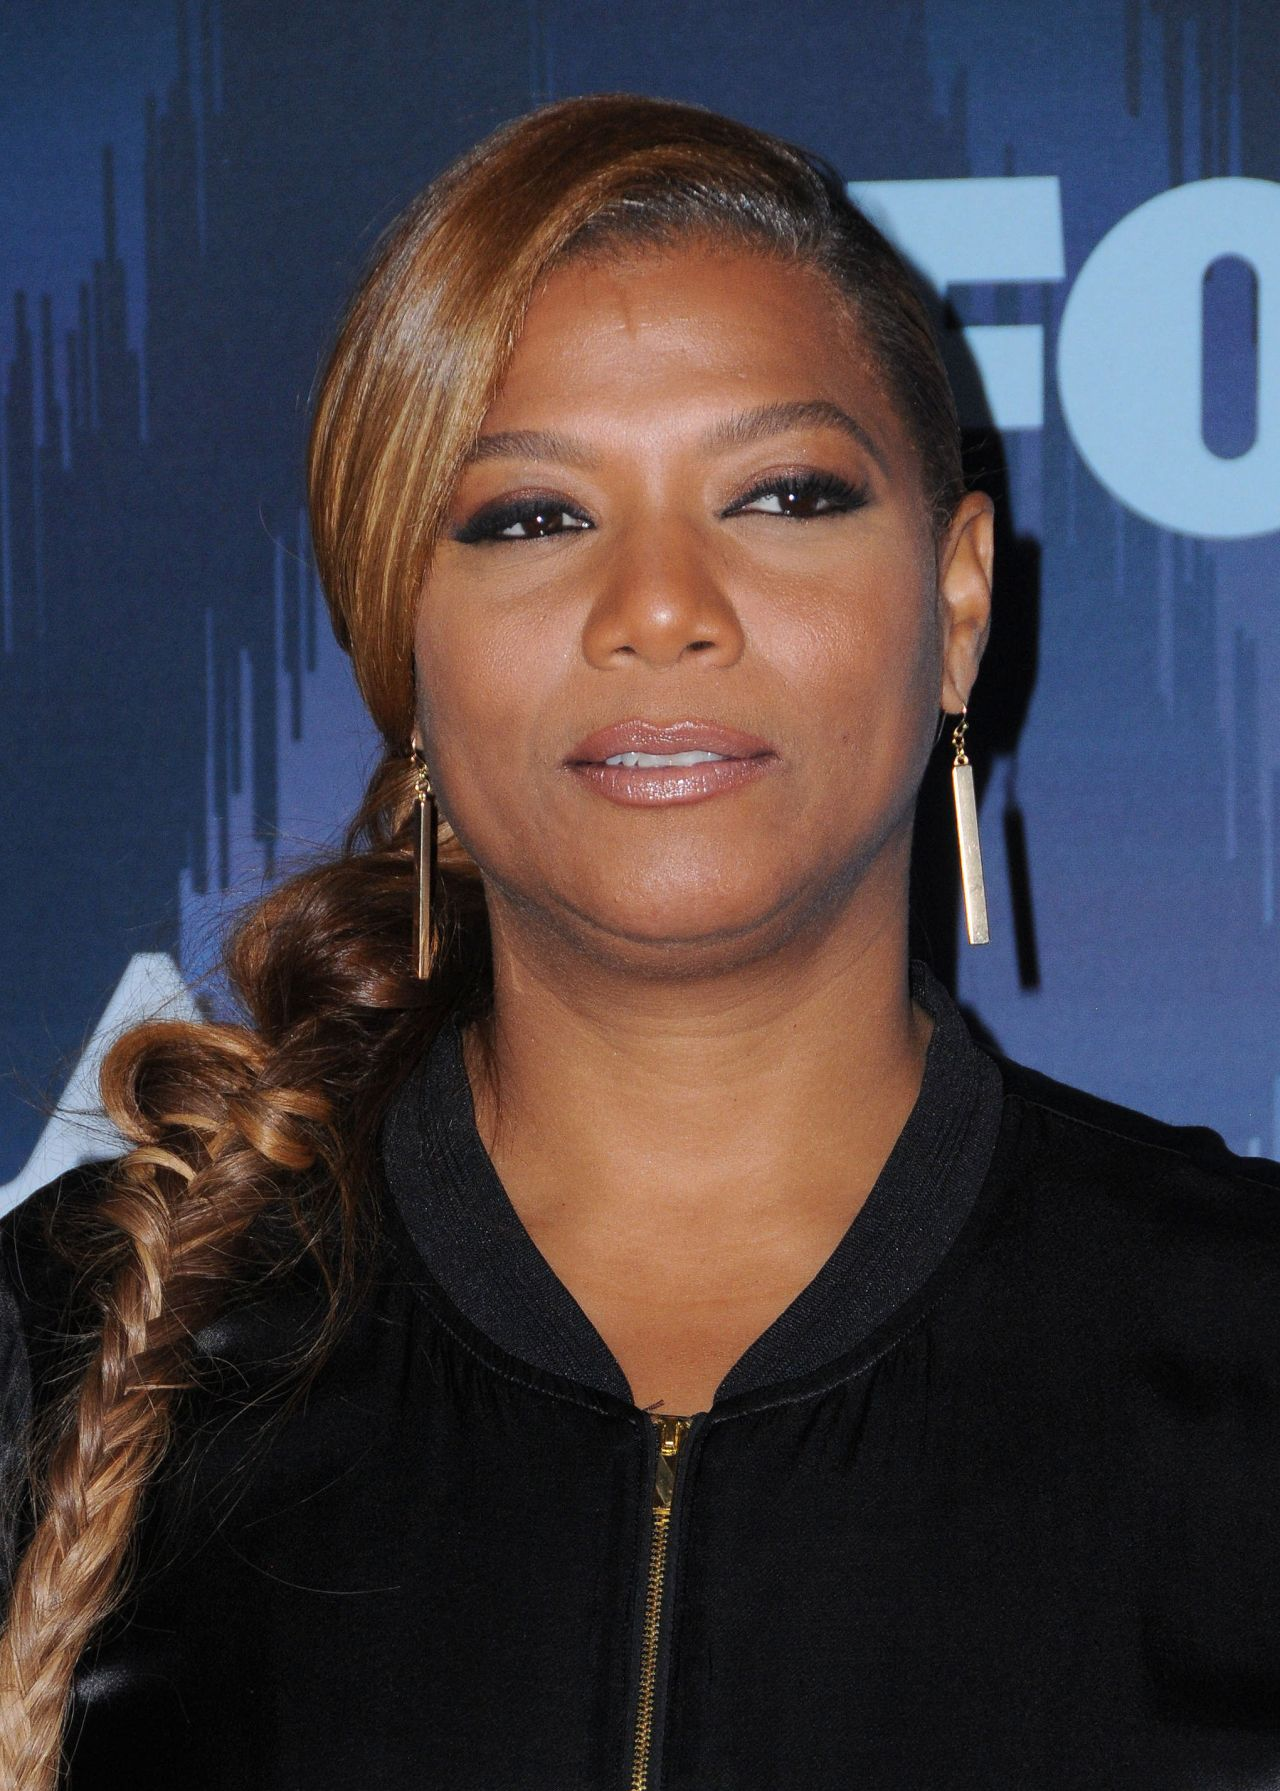 Queen Latifah Fox Winter Tca All Star Party In Pasadena